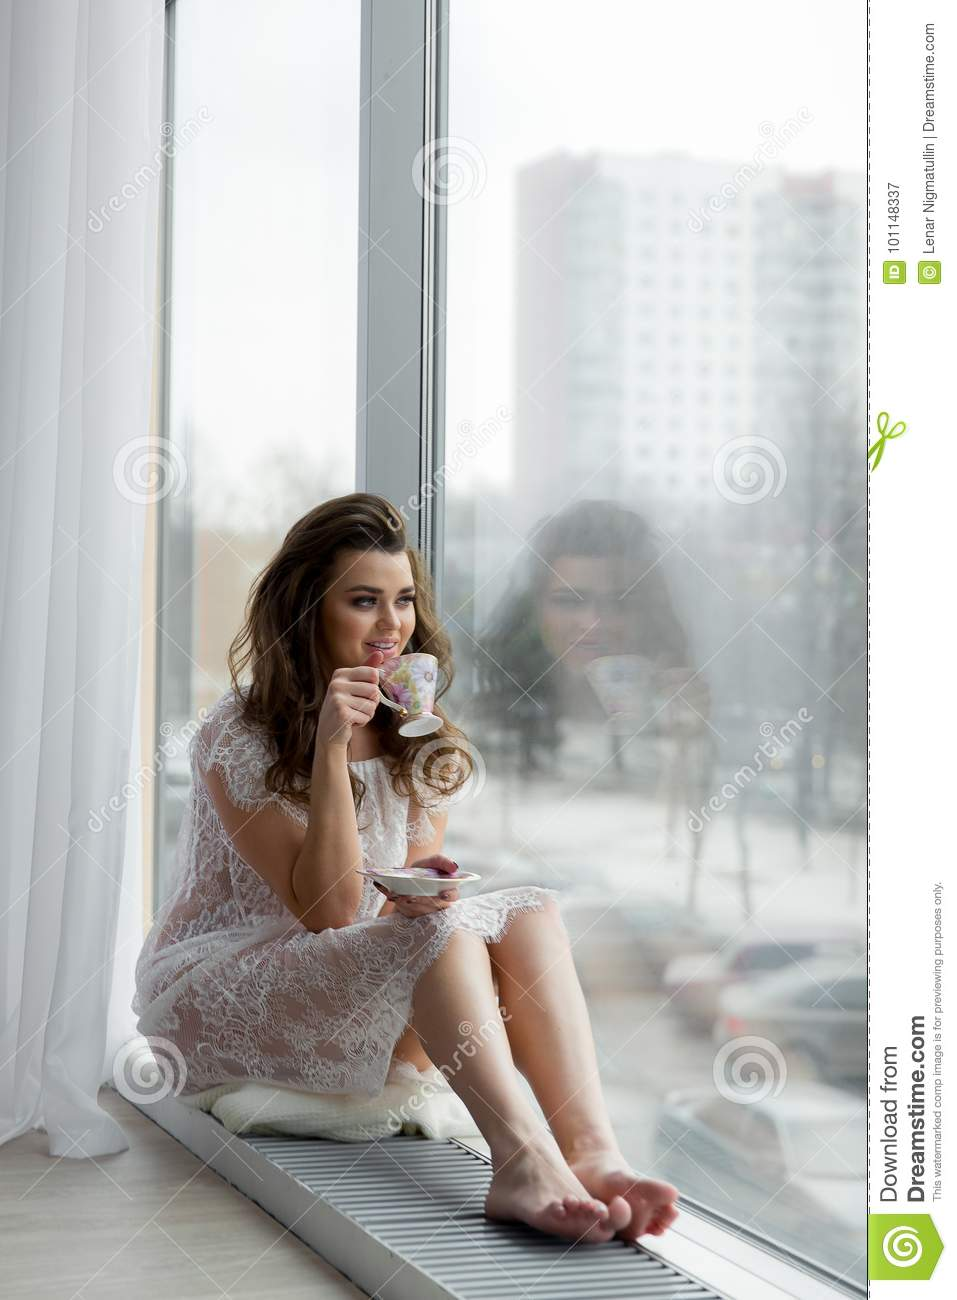 Young Woman In Erotic Transparent Underwear Drinks Coffee On Window Sill Cityscape On Background